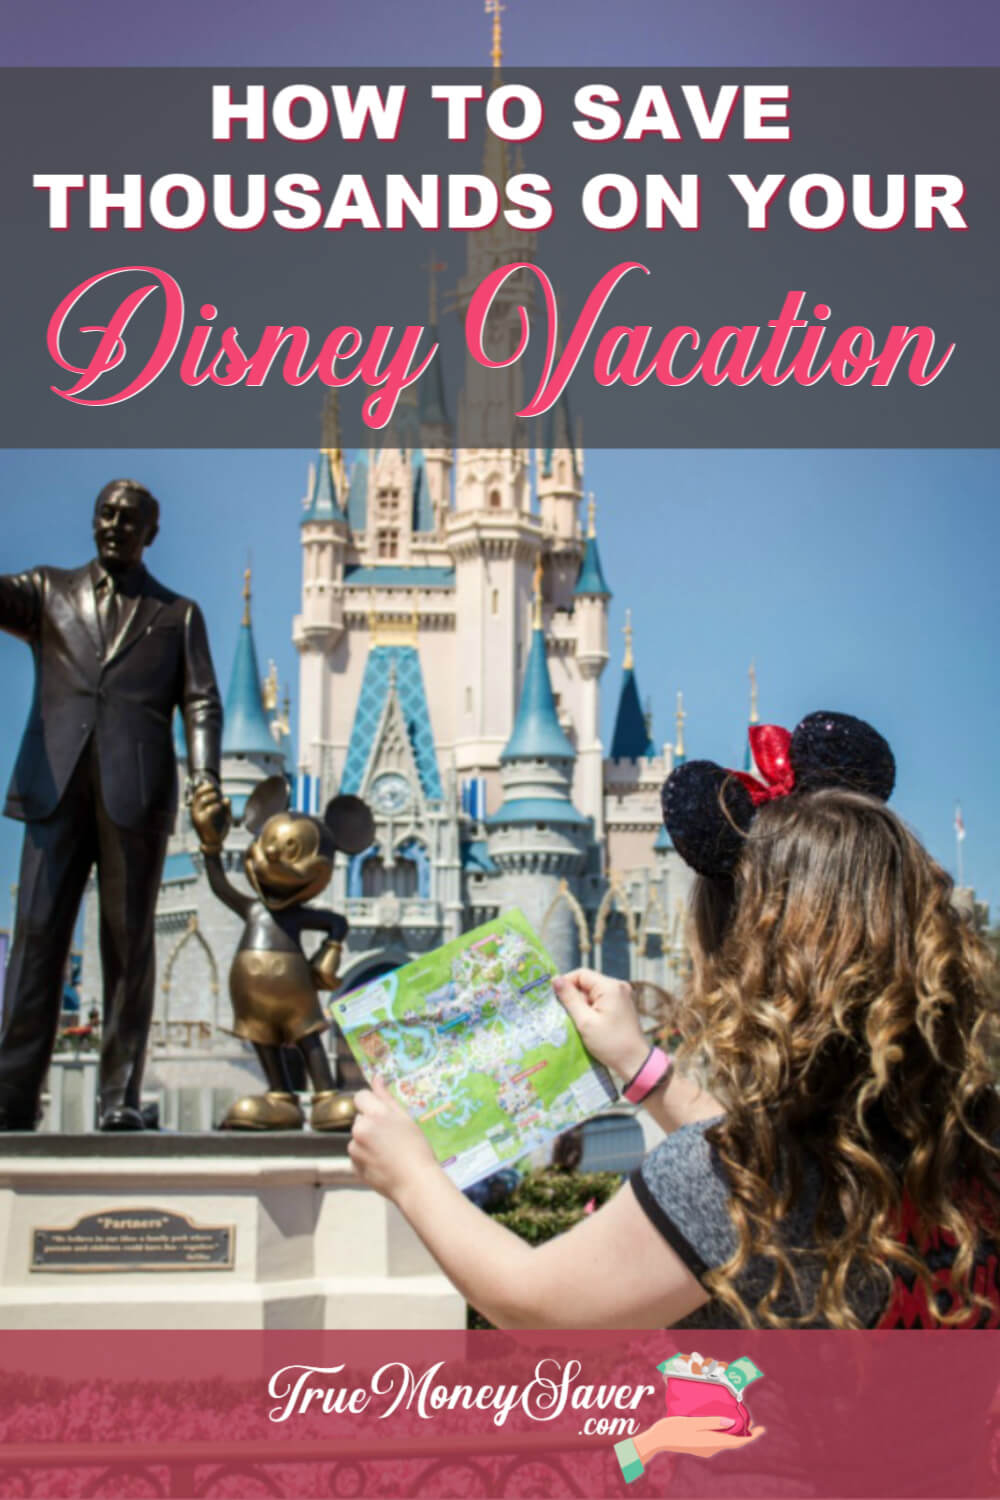 How To Save Thousands On Your Walt Disney World Vacation